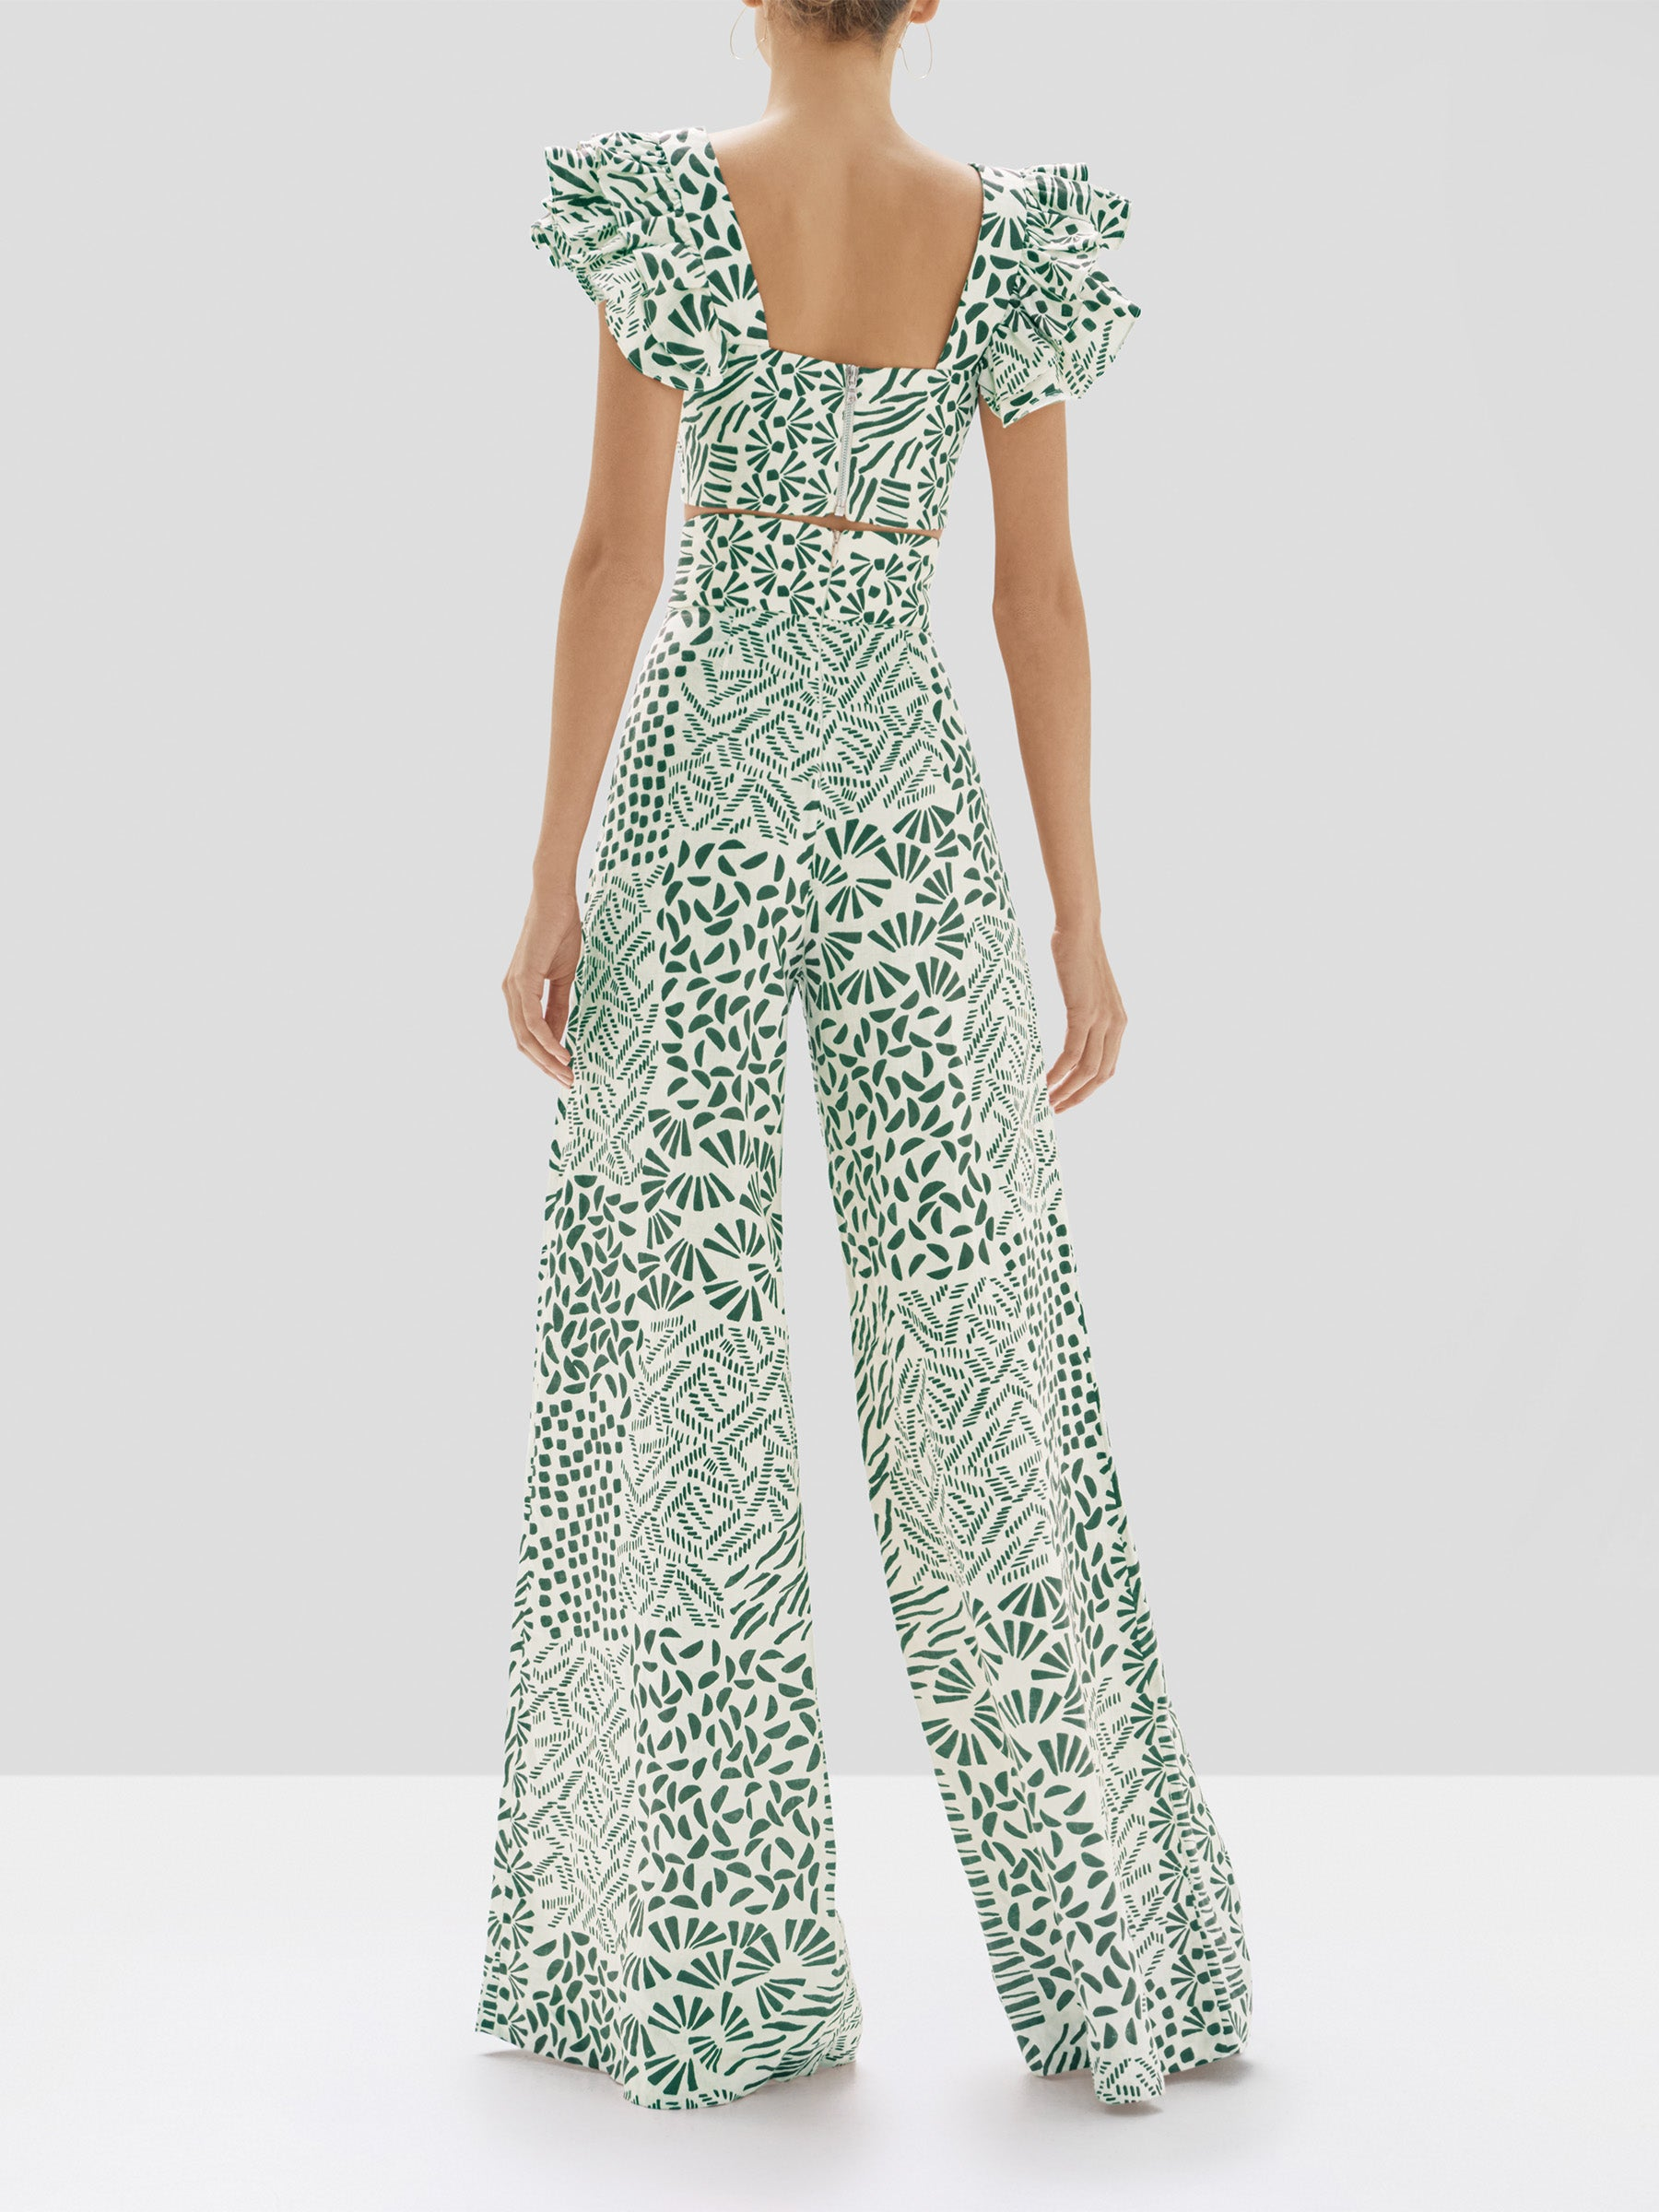 Alexis Verna Top and Neassa Pant in Green Abstract from our Pre-Spring 2020 Ready To Wear Collection - Rear View